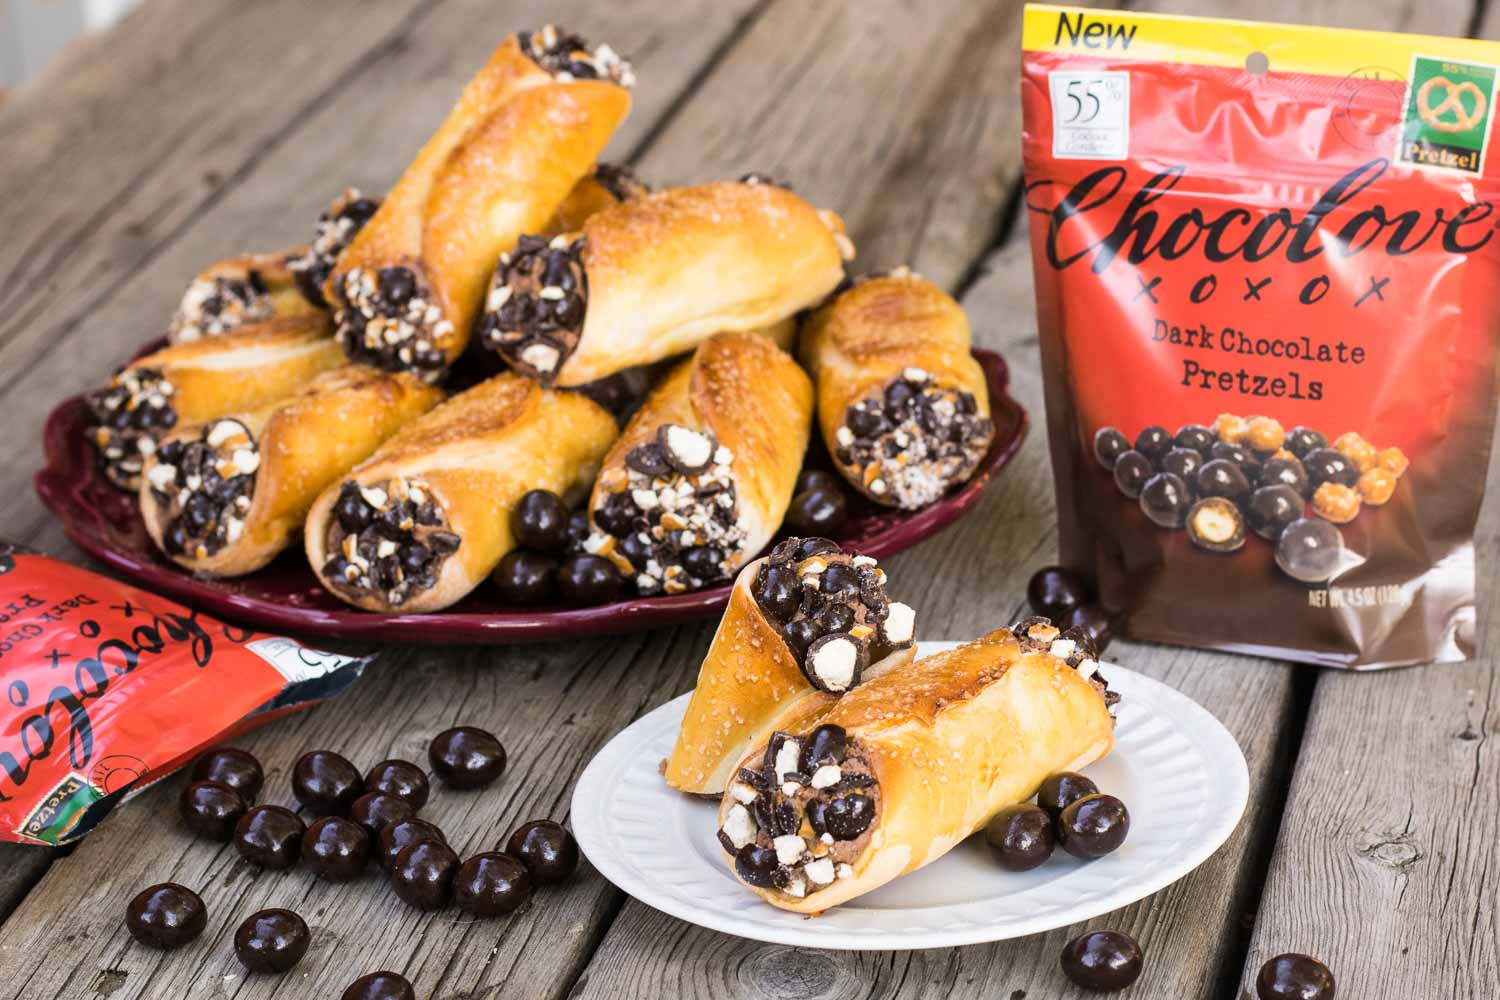 The only thing better than salty-sweet pretzel bites coated in a thick layer of rich dark chocolate is transforming them into pretzel cannoli!